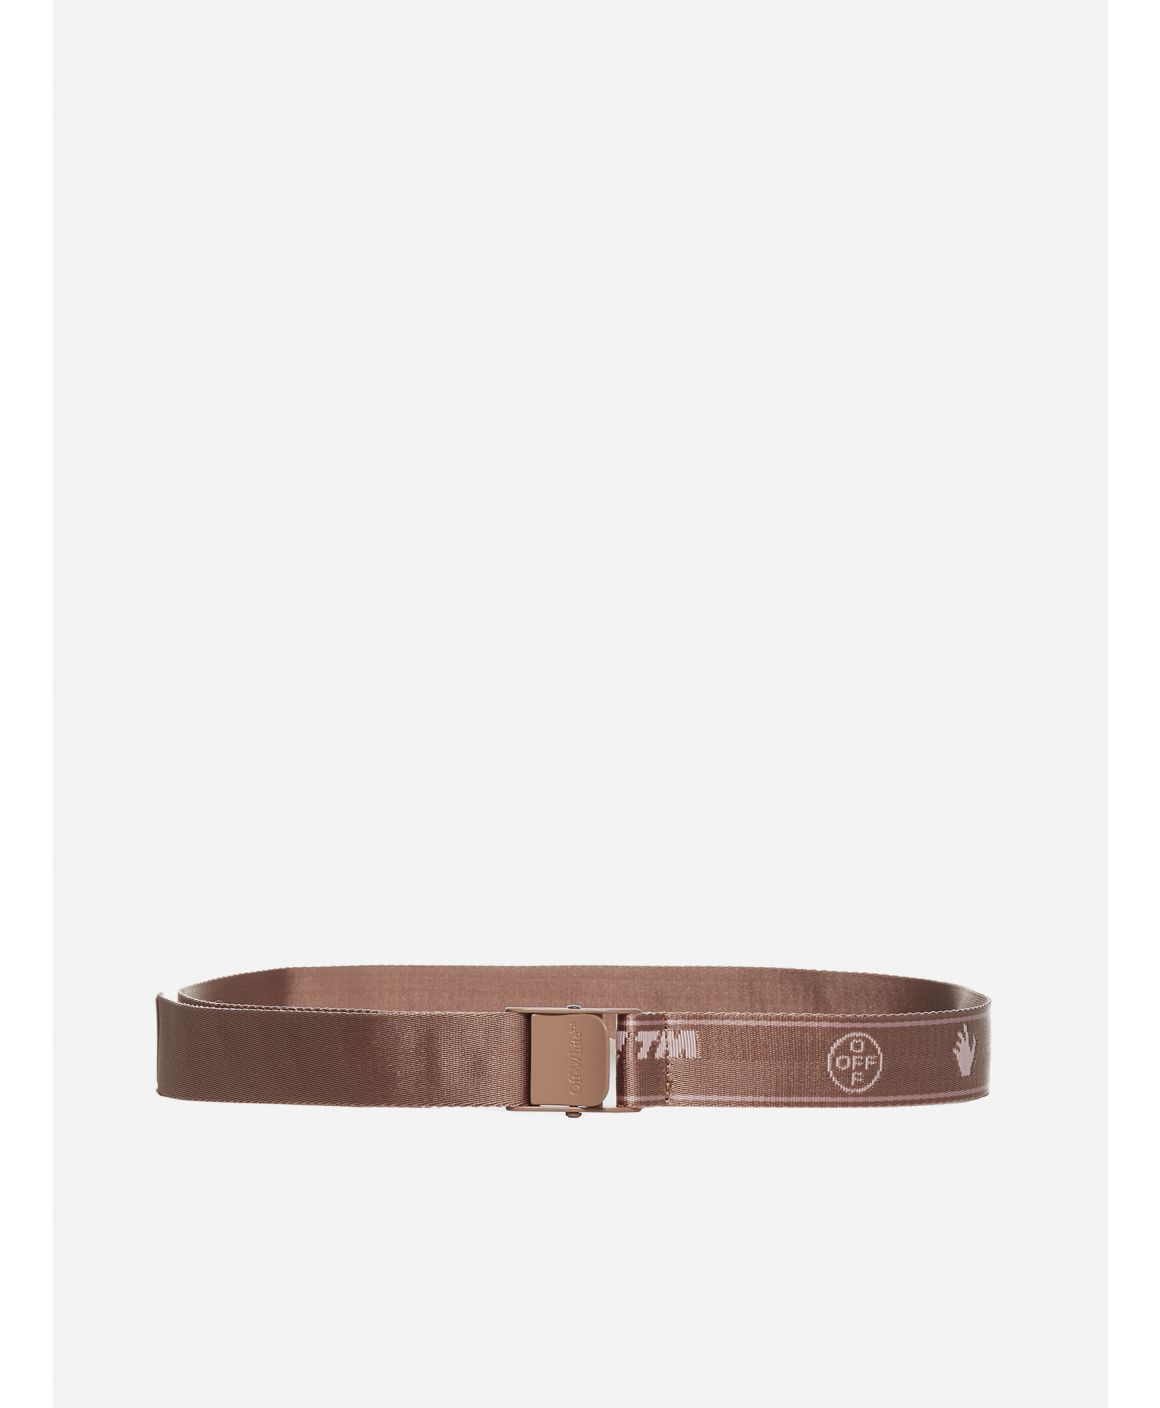 Classic Industrial jacquard canvas belt